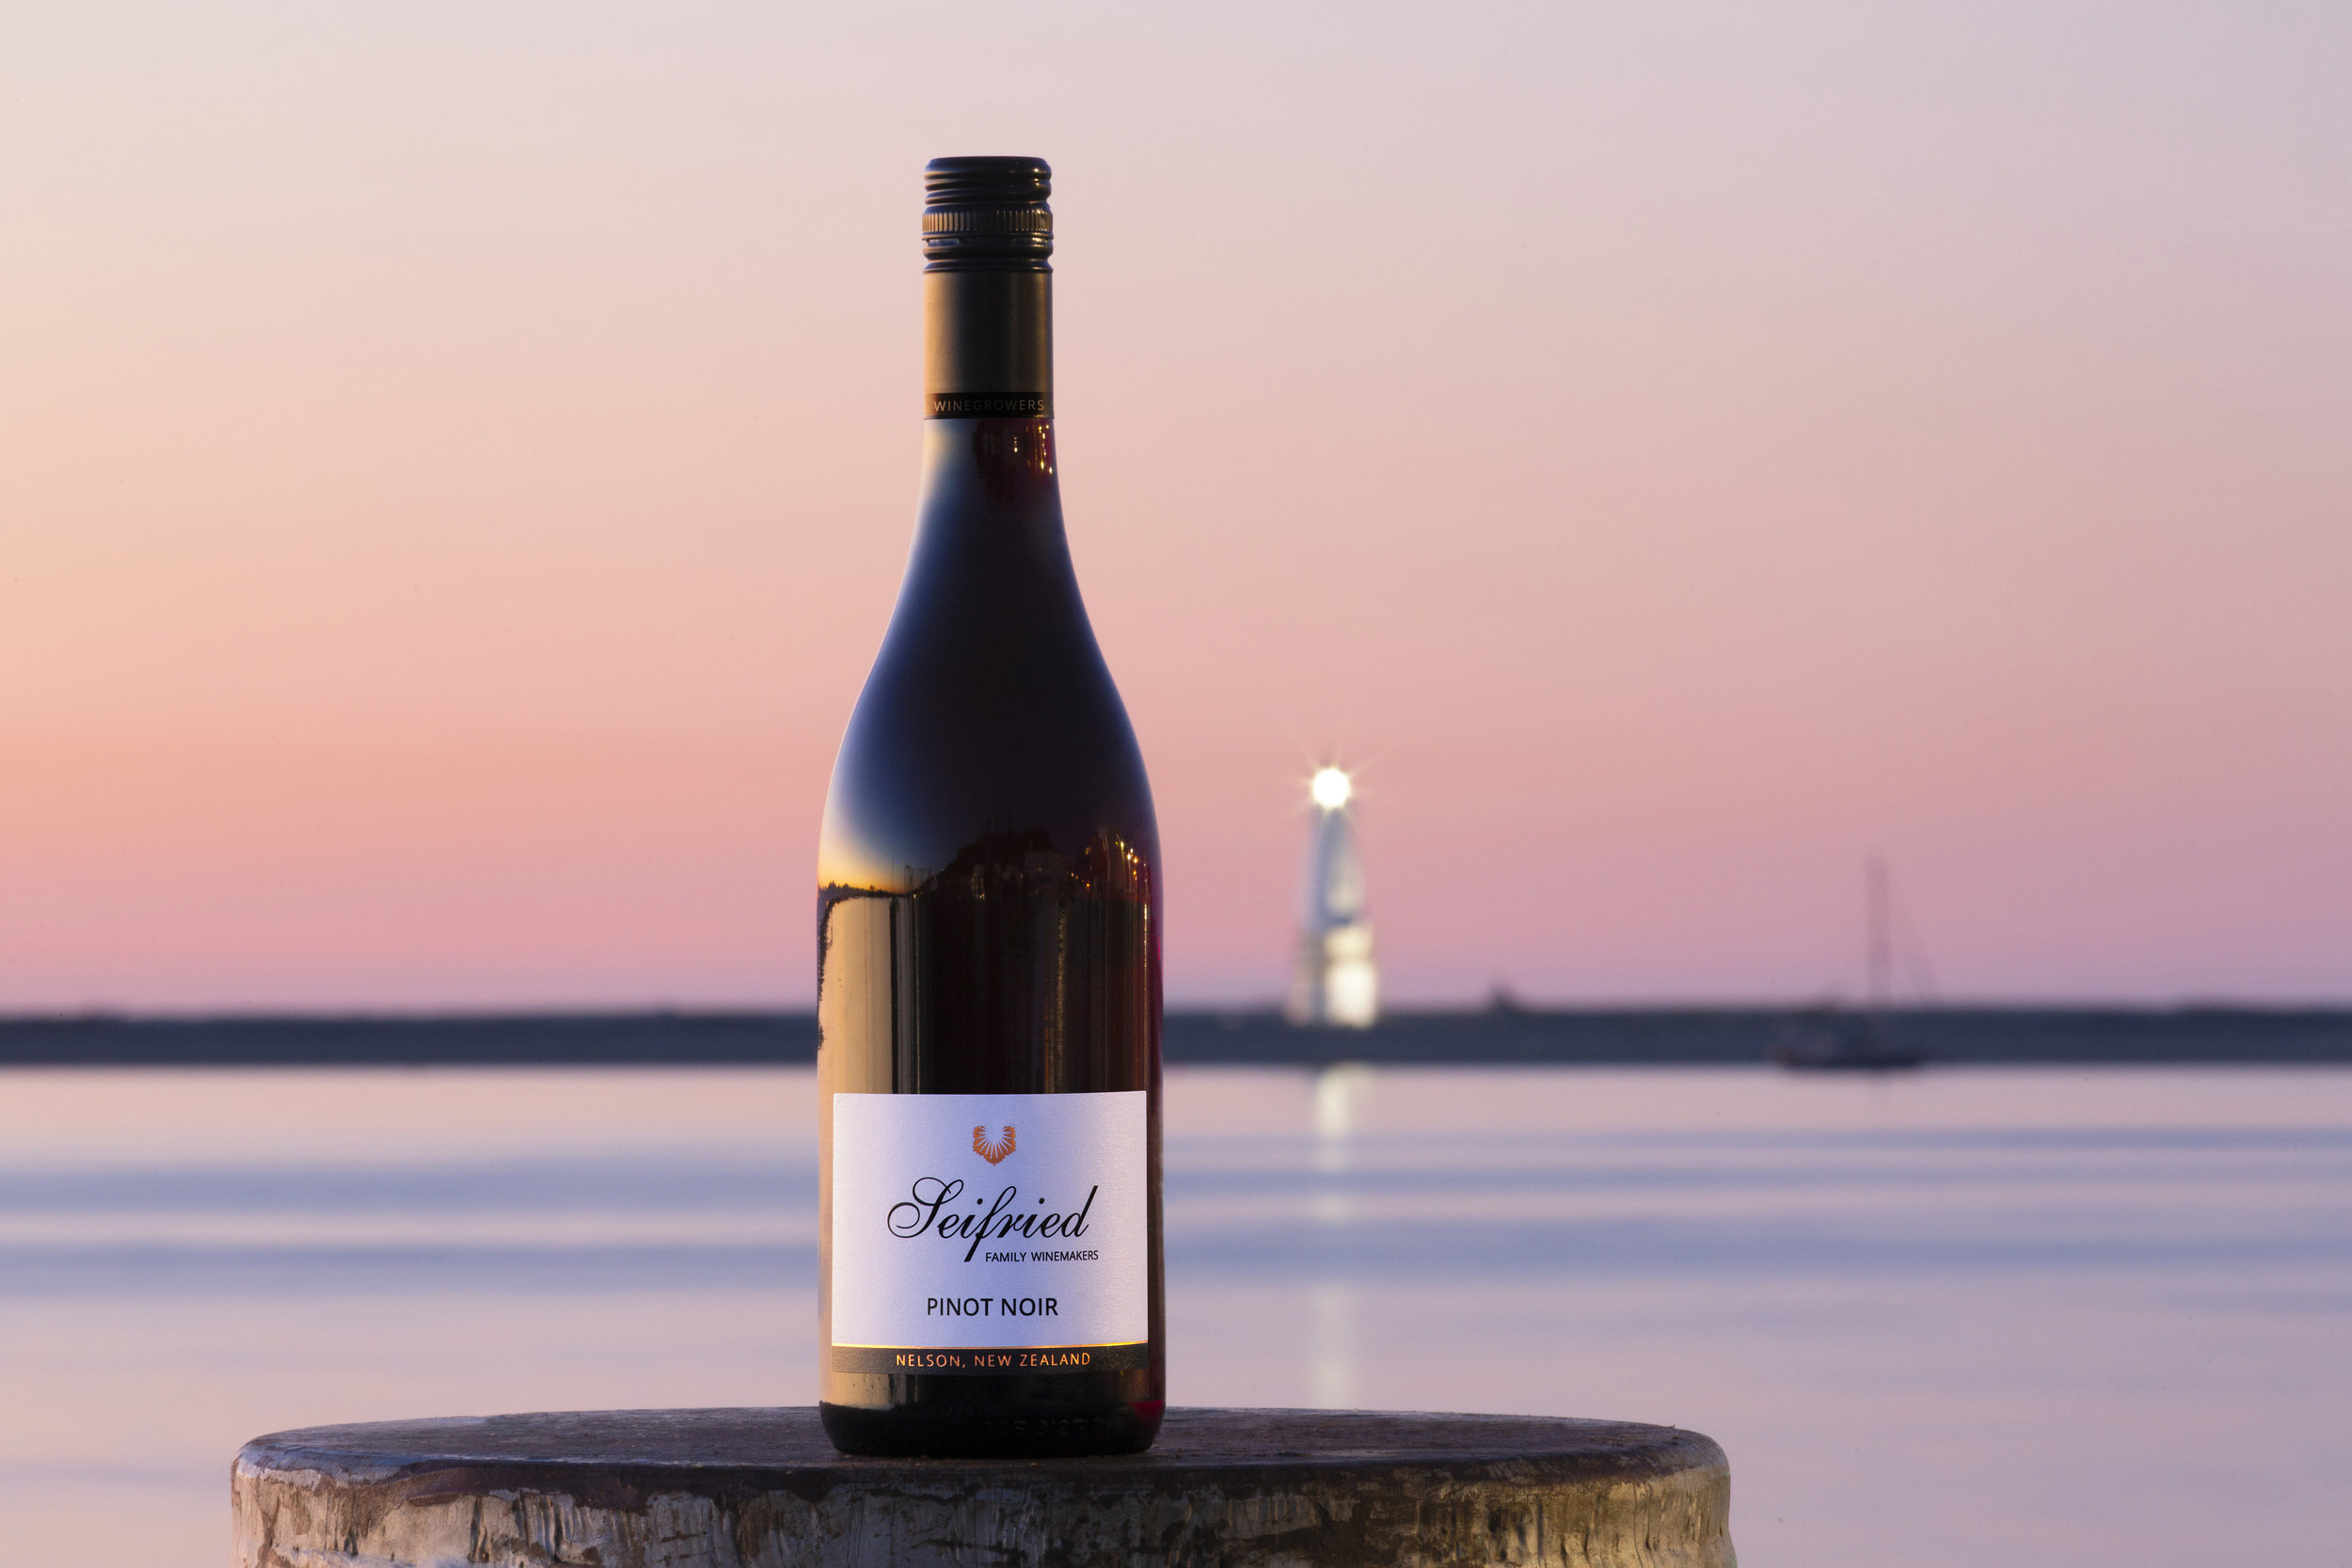 Seifried Pinot Noir_Lighthouse.jpg